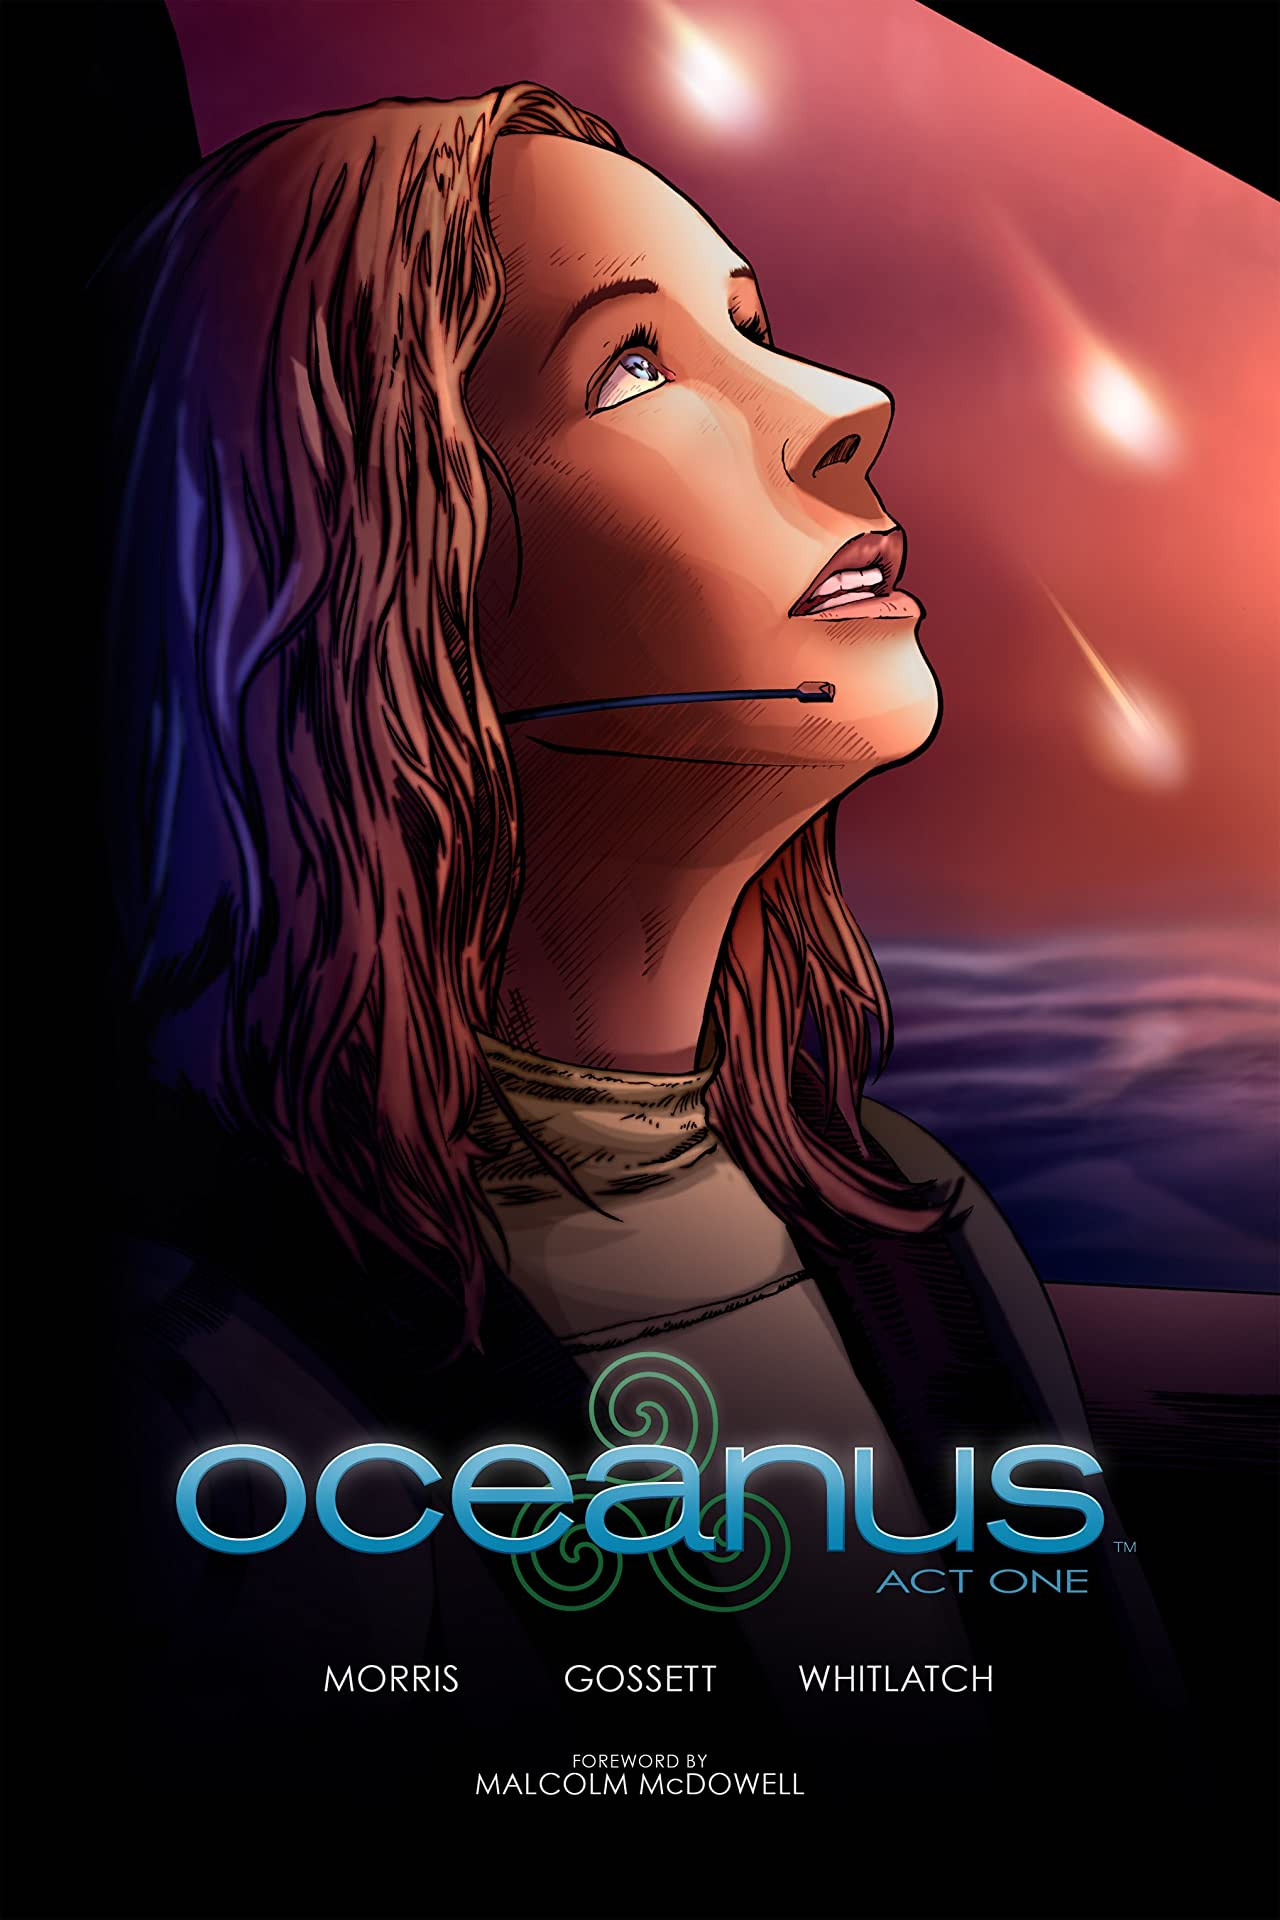 Oceanus: Act One